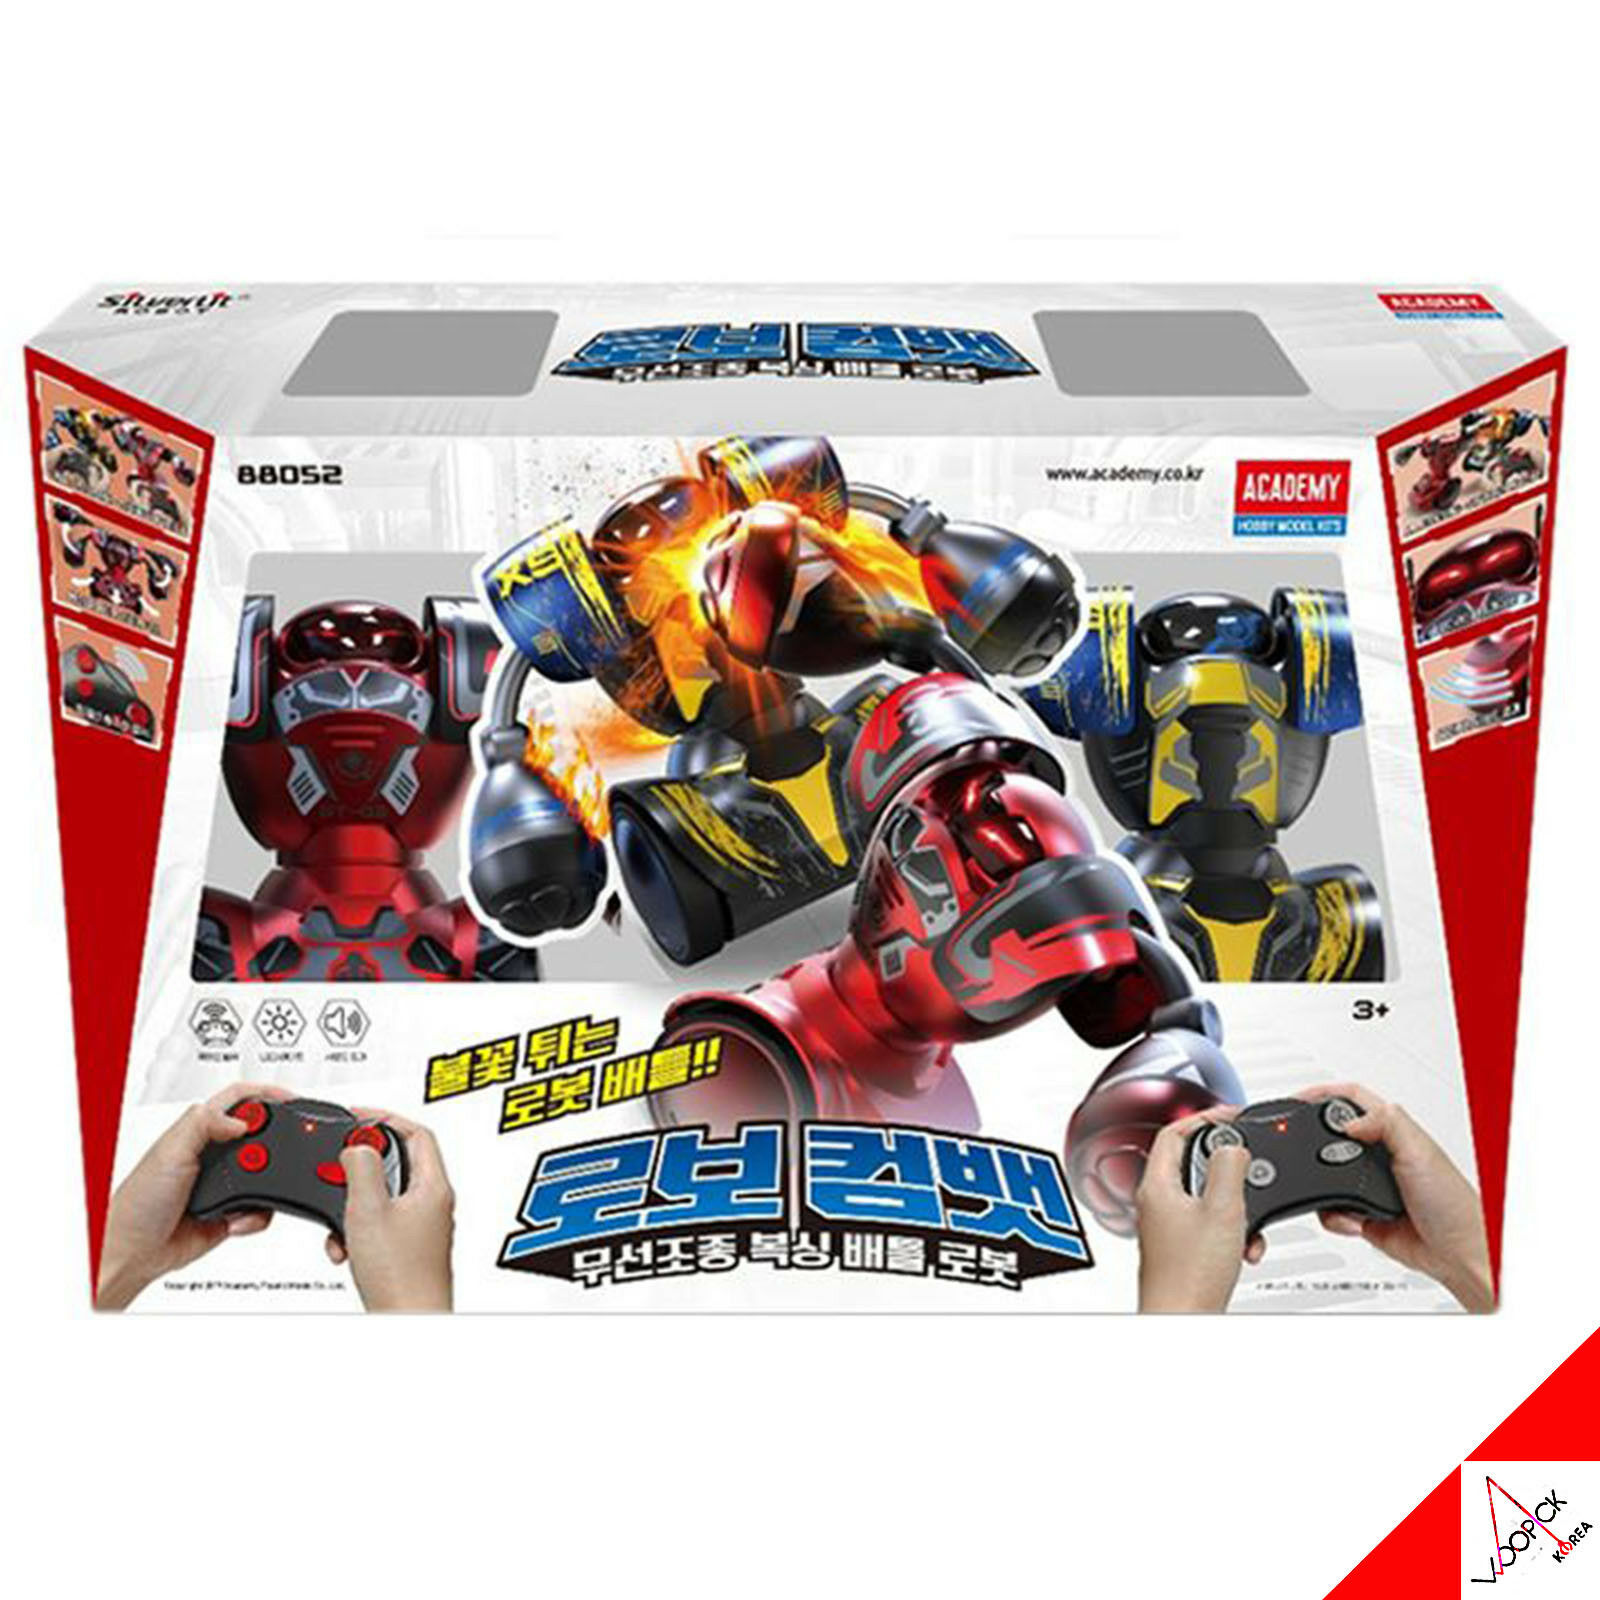 New Academy ROBOT COMBAT Wireless Remote Control Boxing Robot Battle Game 88052